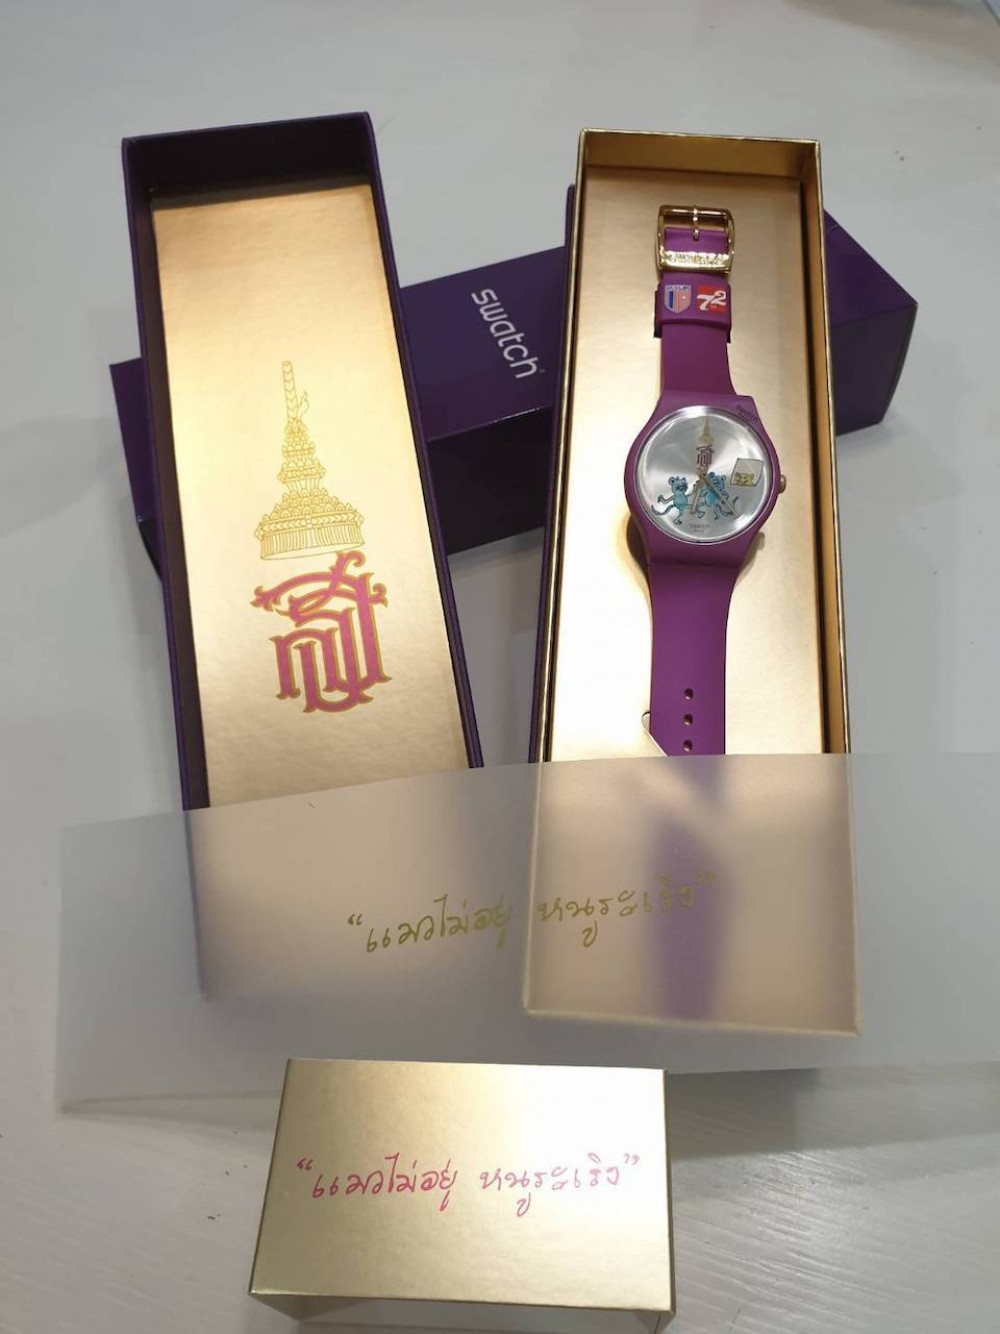 Limited edition Swatch watch with the Princess drawing